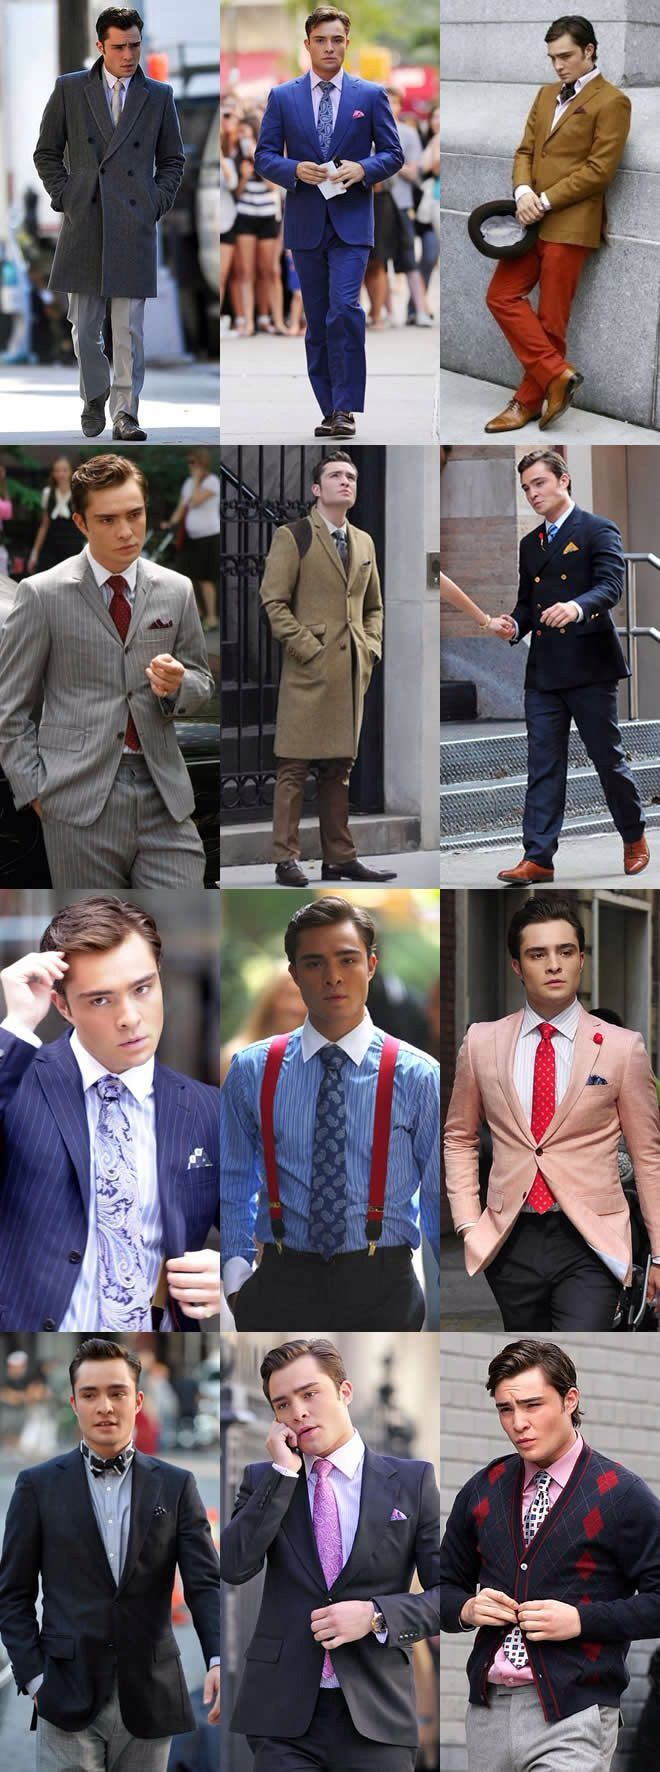 Every guy should take notes from the one and only fashion icon chuck bass